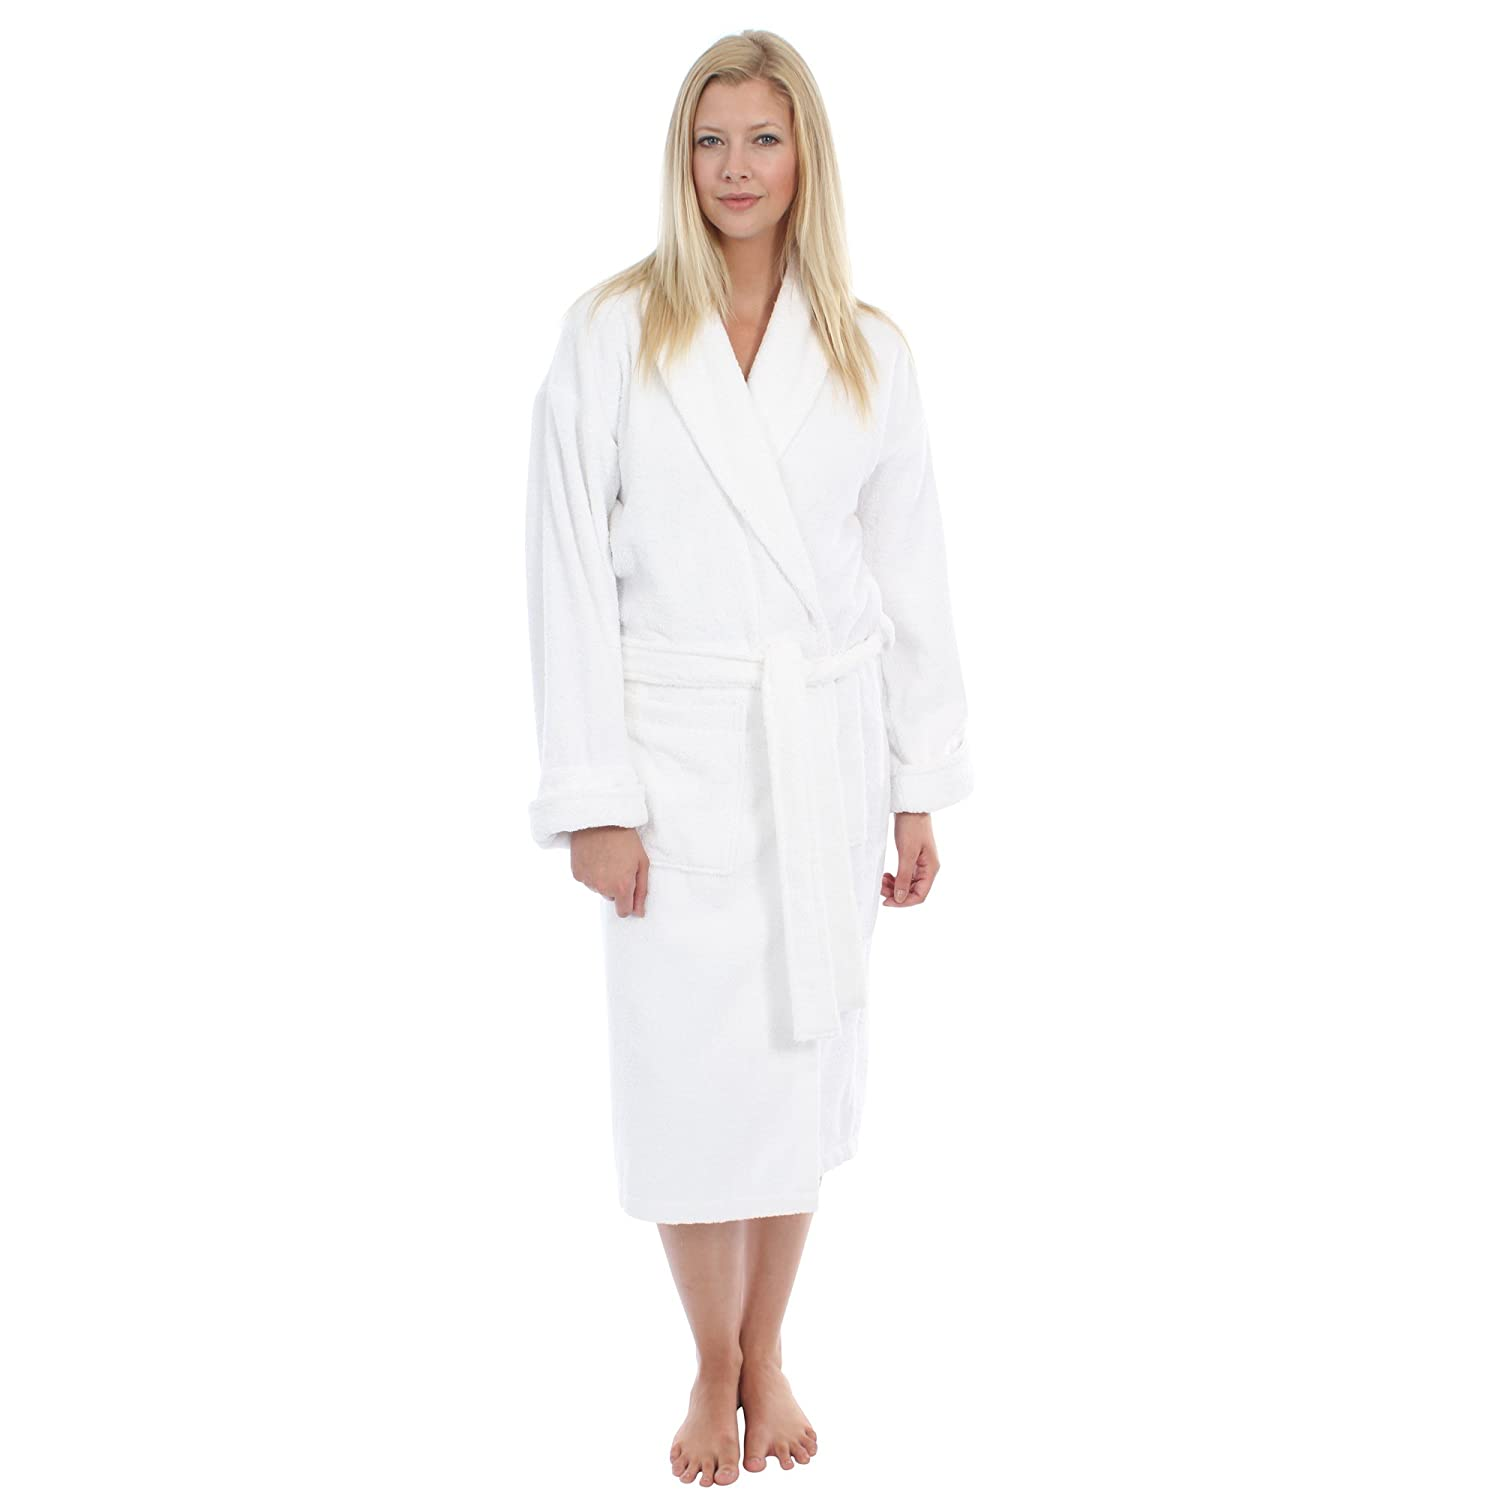 Ladies 100% Cotton Towelling Bath Robe   Dressing Gown. Pink or White.  Sizes S M L XL 653807e48